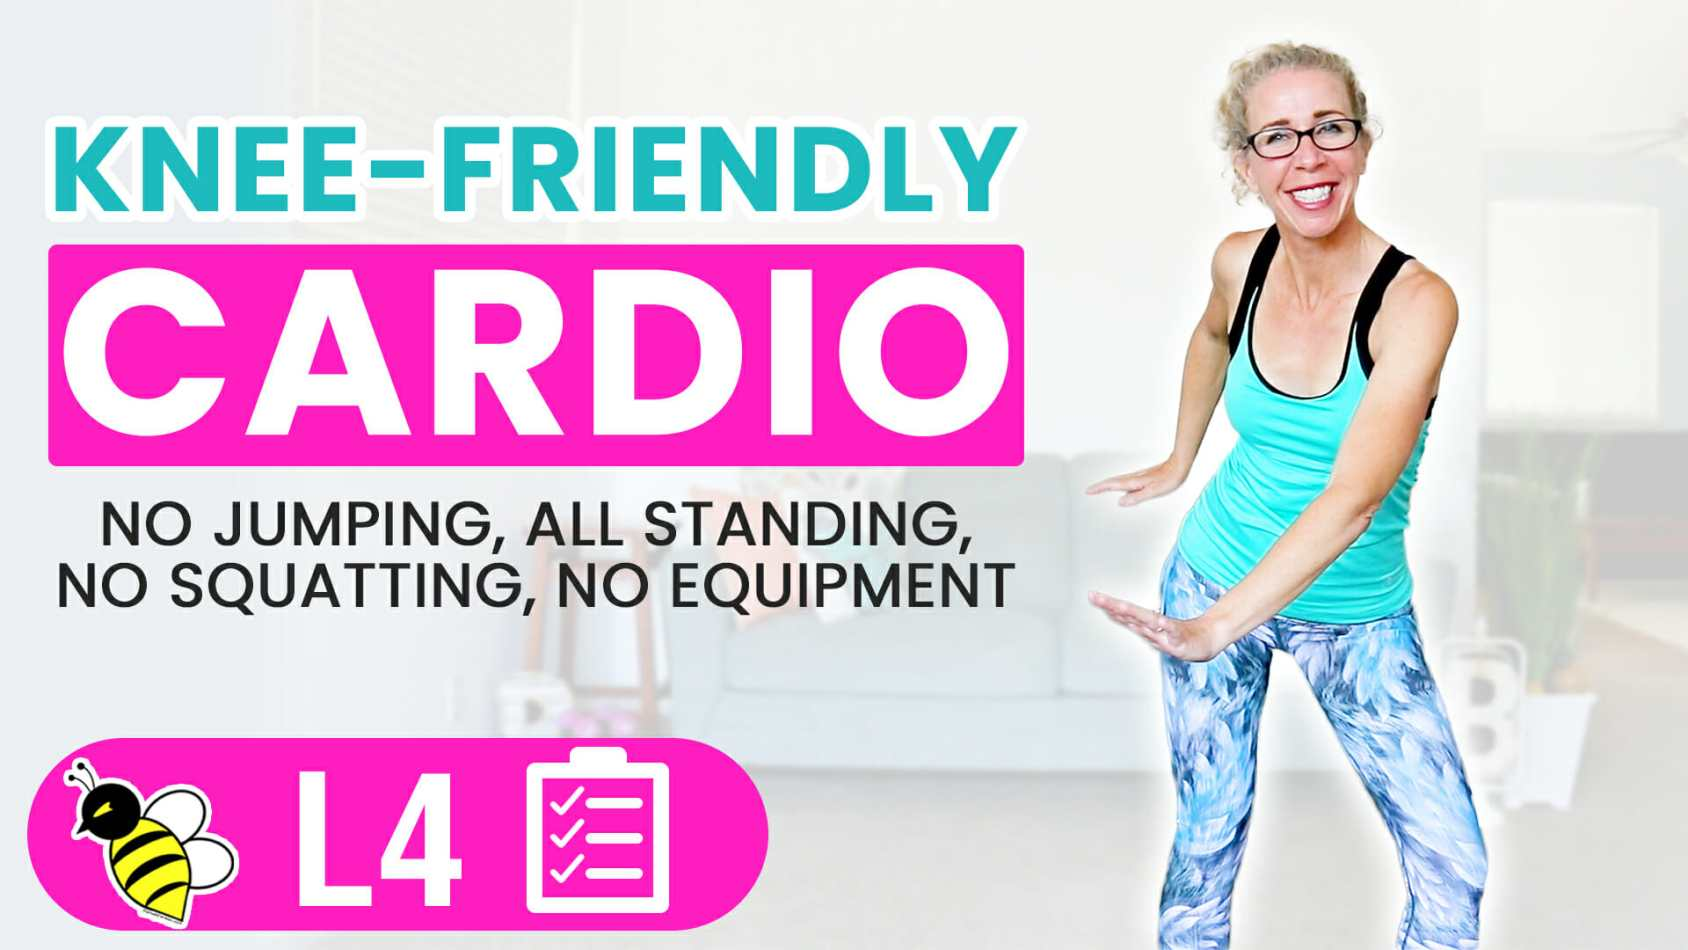 Knee-Friendly Cardio 40 Minute LOW IMPACT Workout Burn 400 Calories